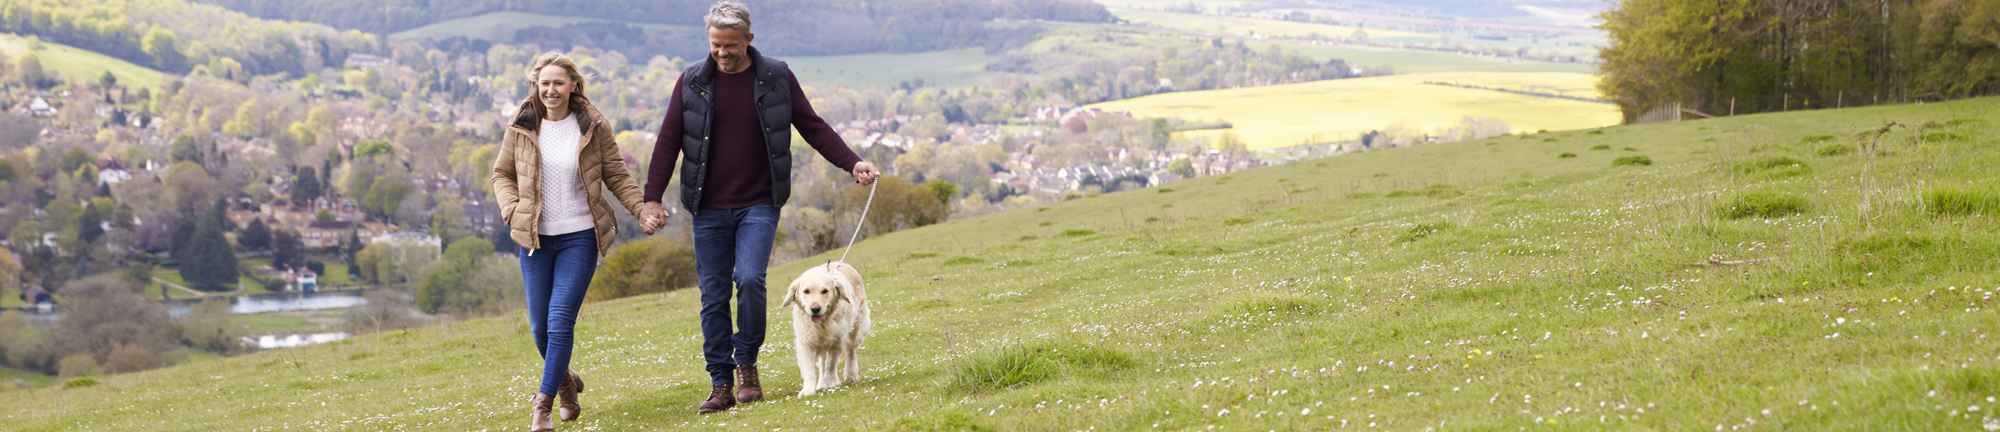 Couple walking dog in countryside - Macdonald Resorts